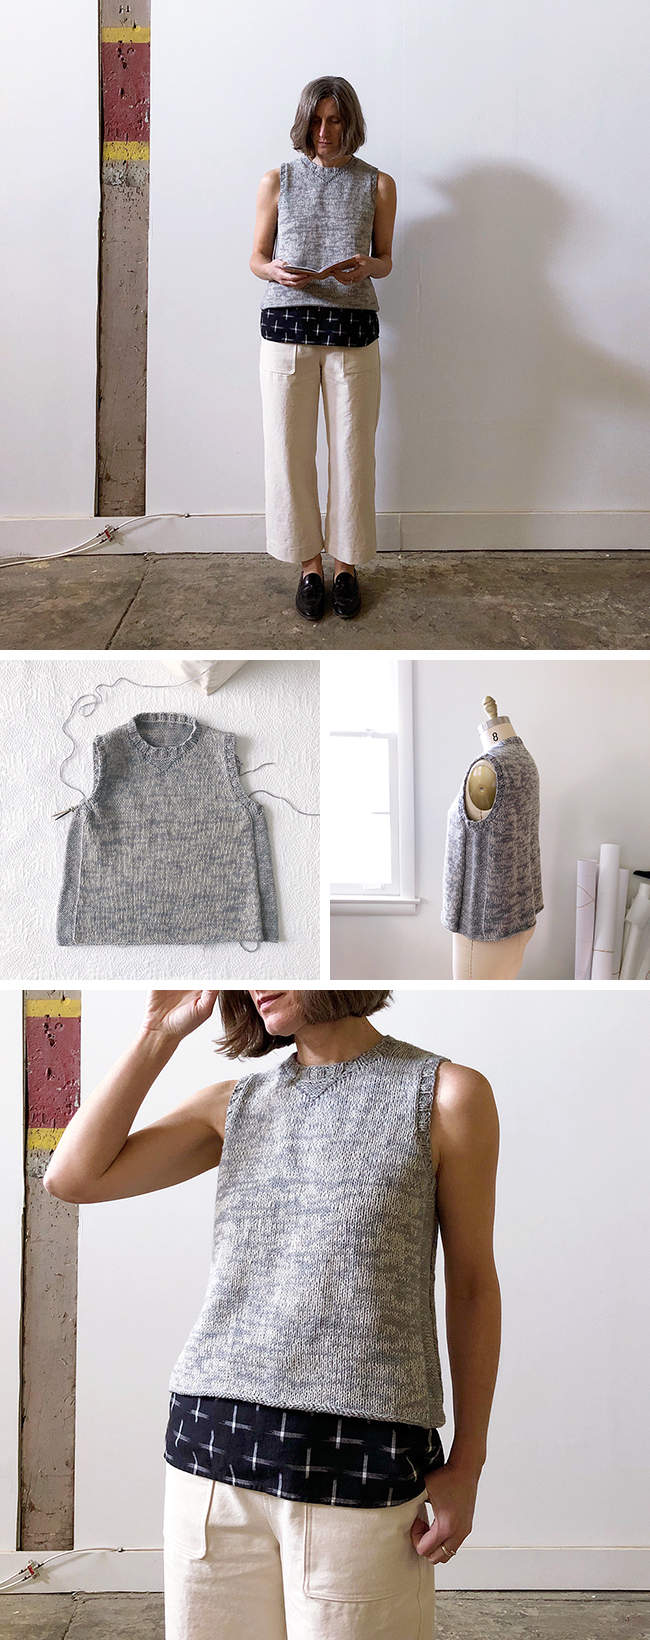 The sweatshirt vest (2018 FO-13)